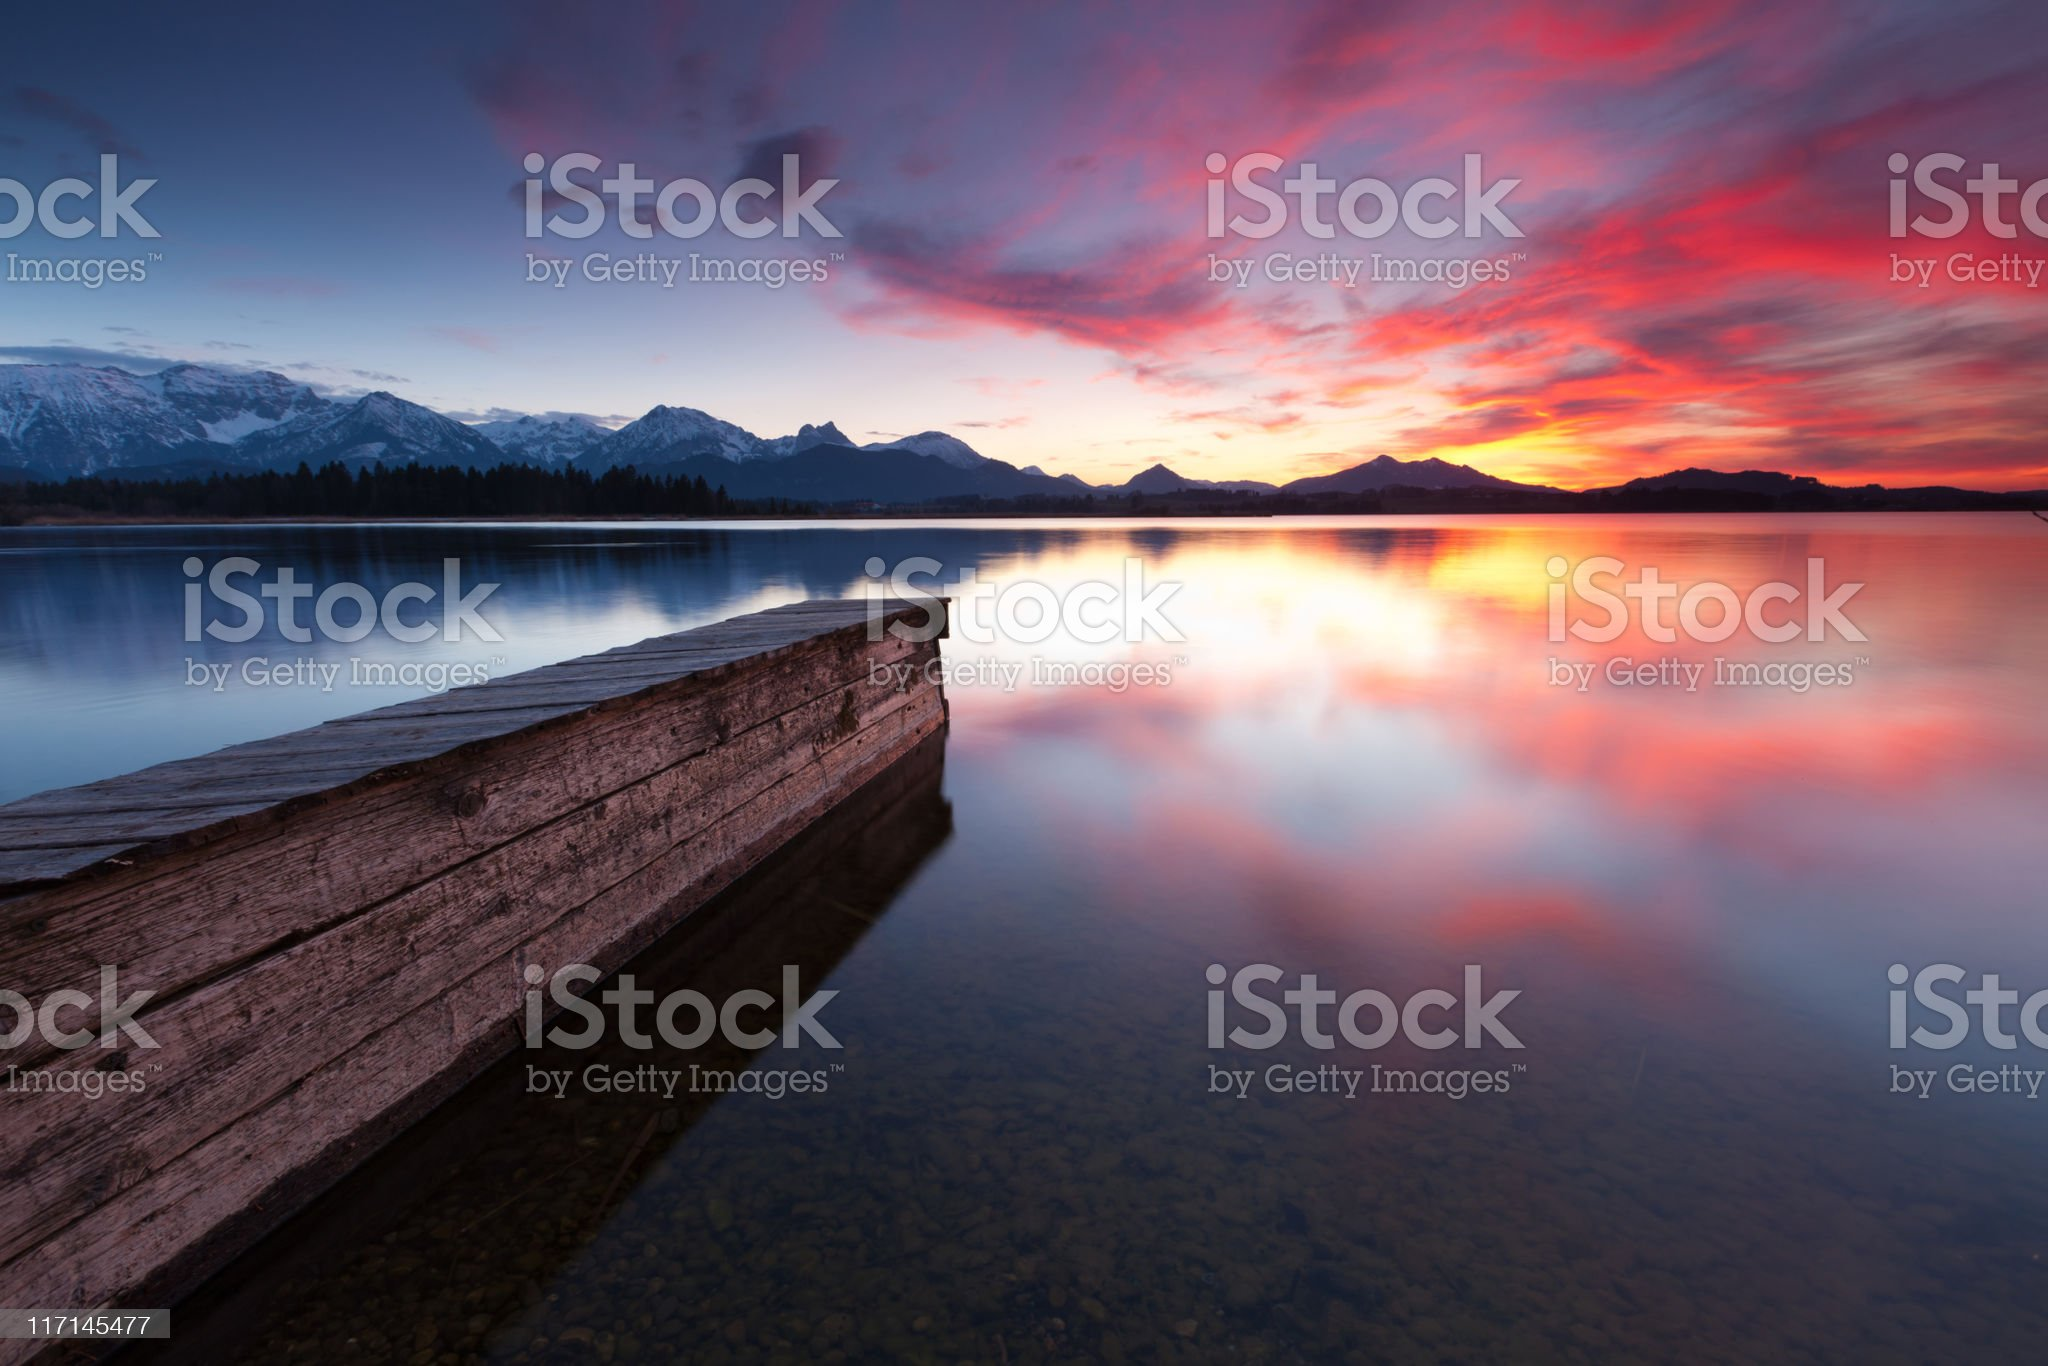 tranquil sunset at lake hopfensee in bavaria with pier- germany royalty-free stock photo